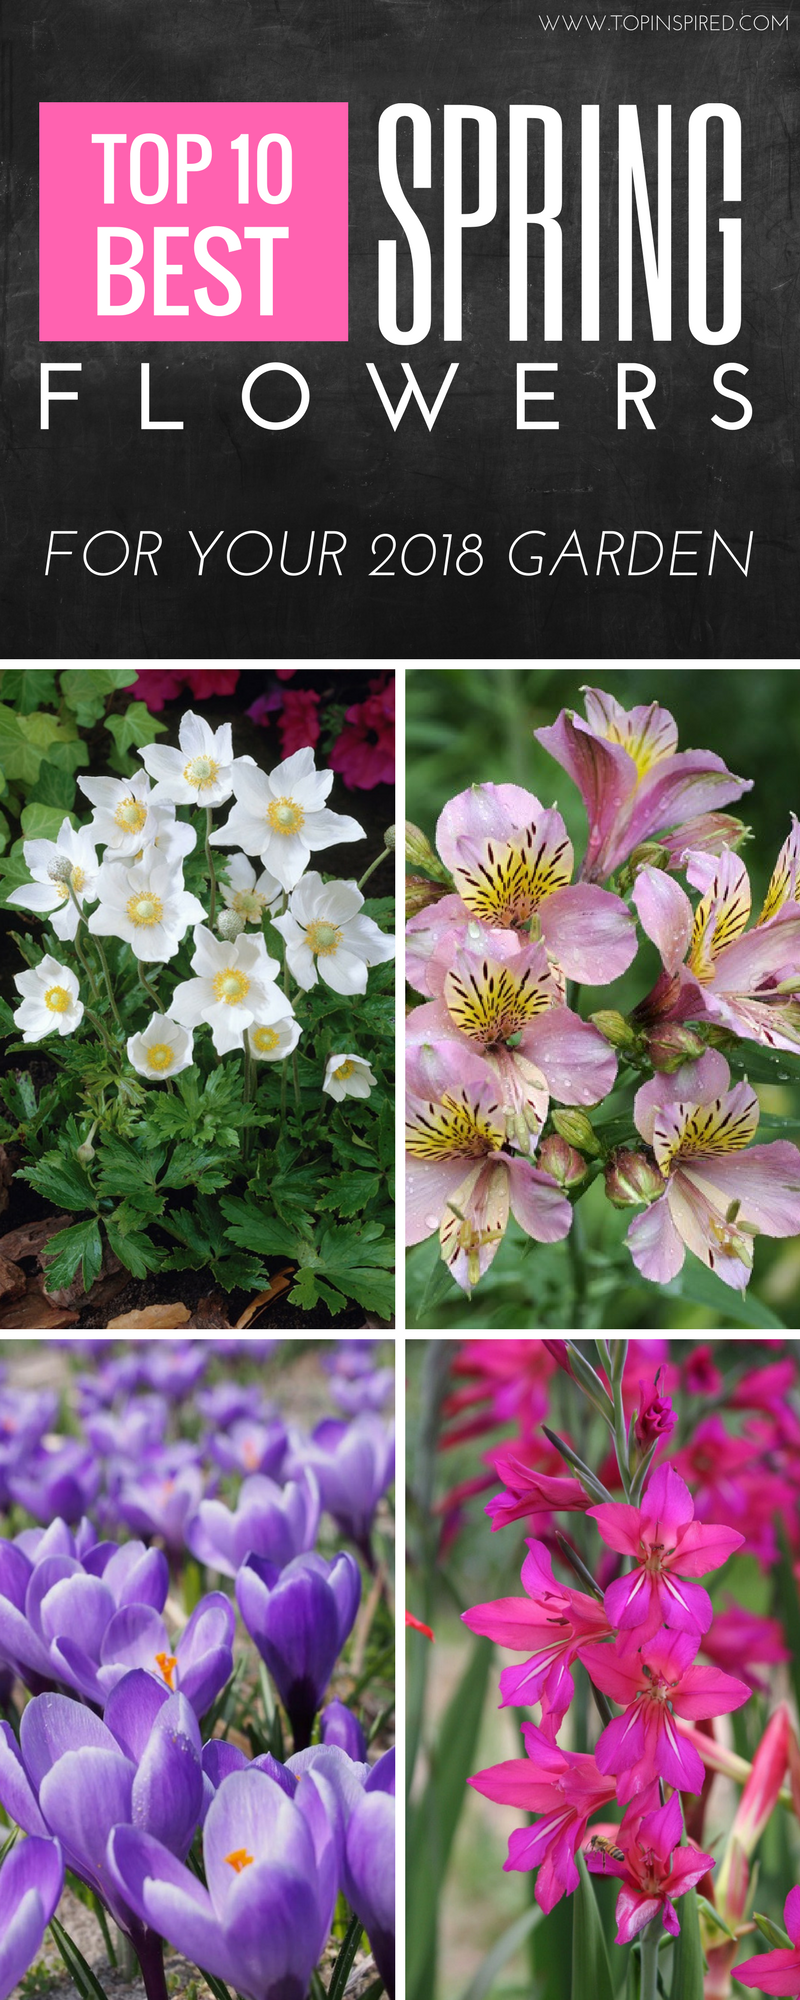 Top 10 Beautiful Spring Flowers For Your Garden Flowers Plants